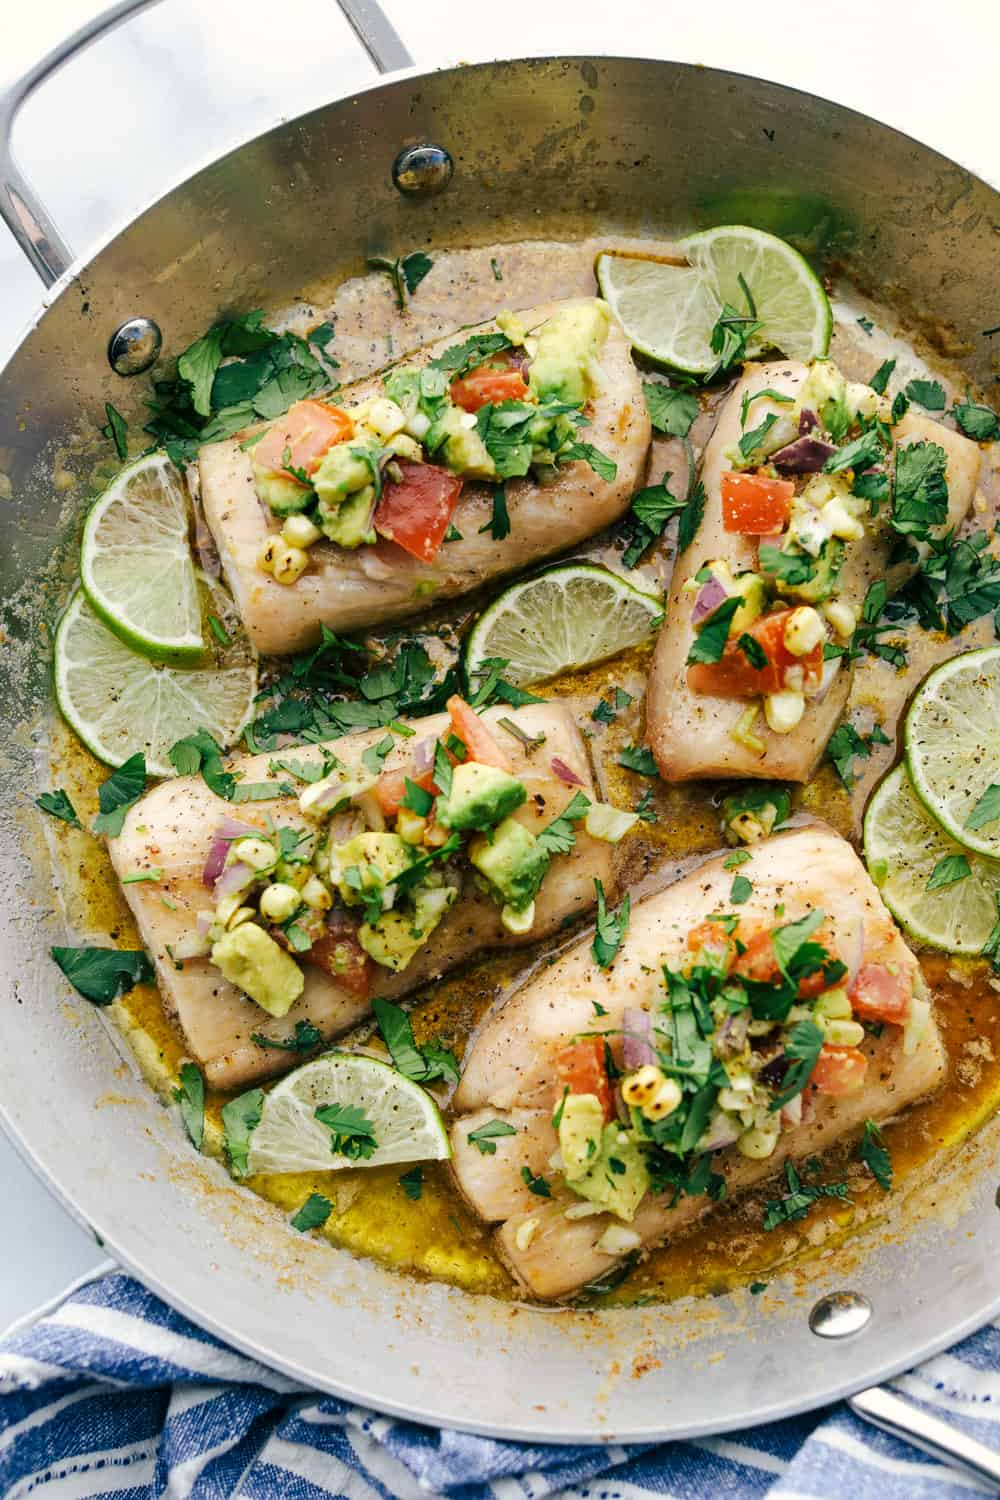 Mahi Mahi filets cooked in a skillet with brown butter and garnished with avocado on top.